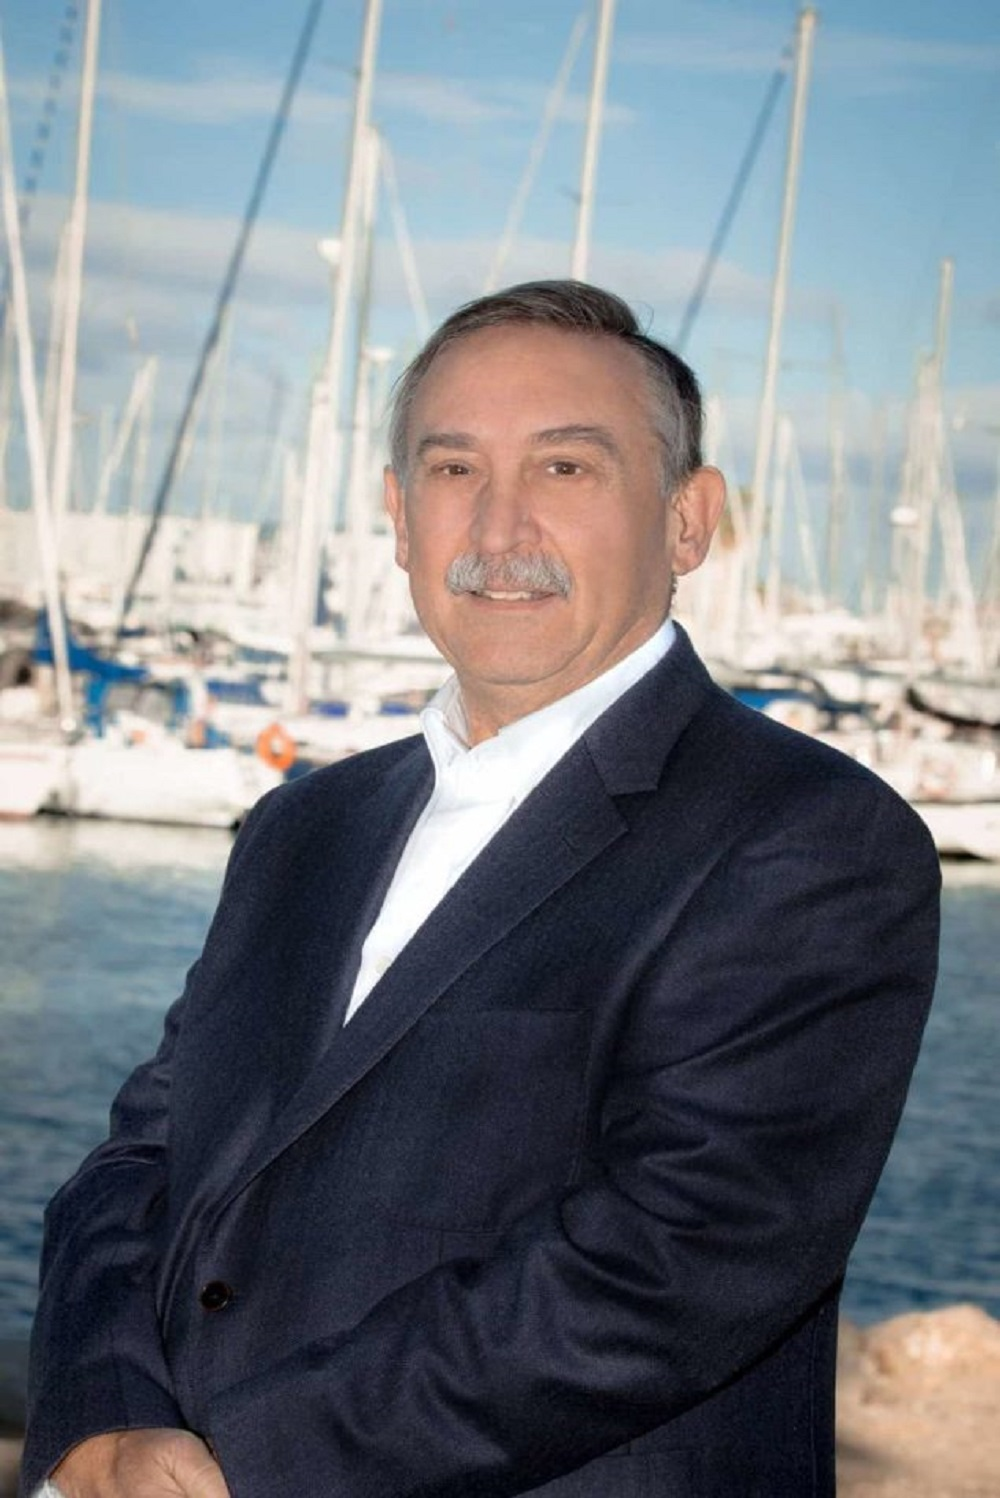 Guillermo Carbonell